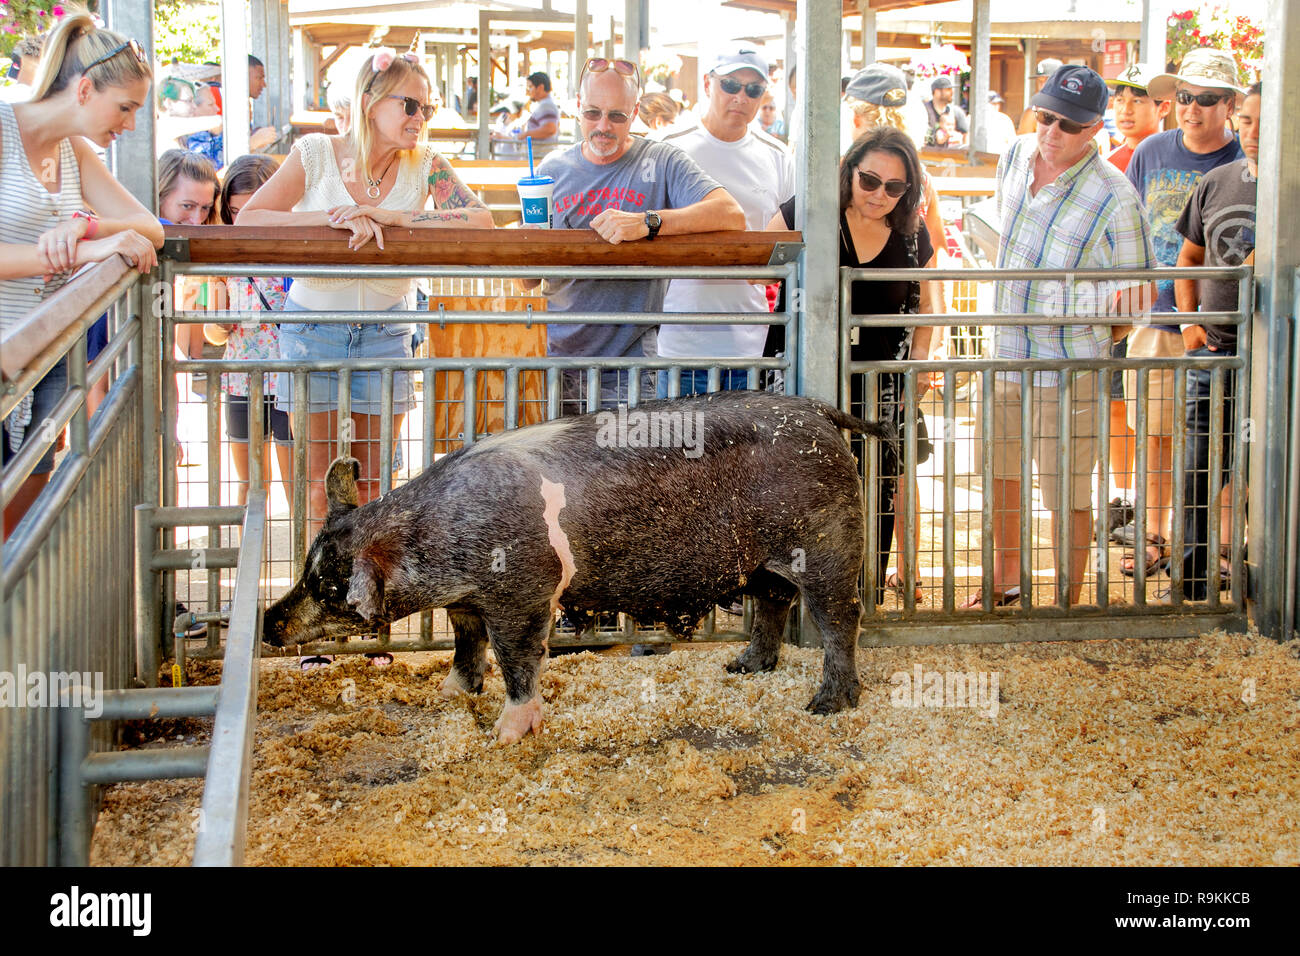 Indifferent to the attention a group of spectators, a pig eats in her cage at a county fair model farm in Costa Mesa, CA. - Stock Image